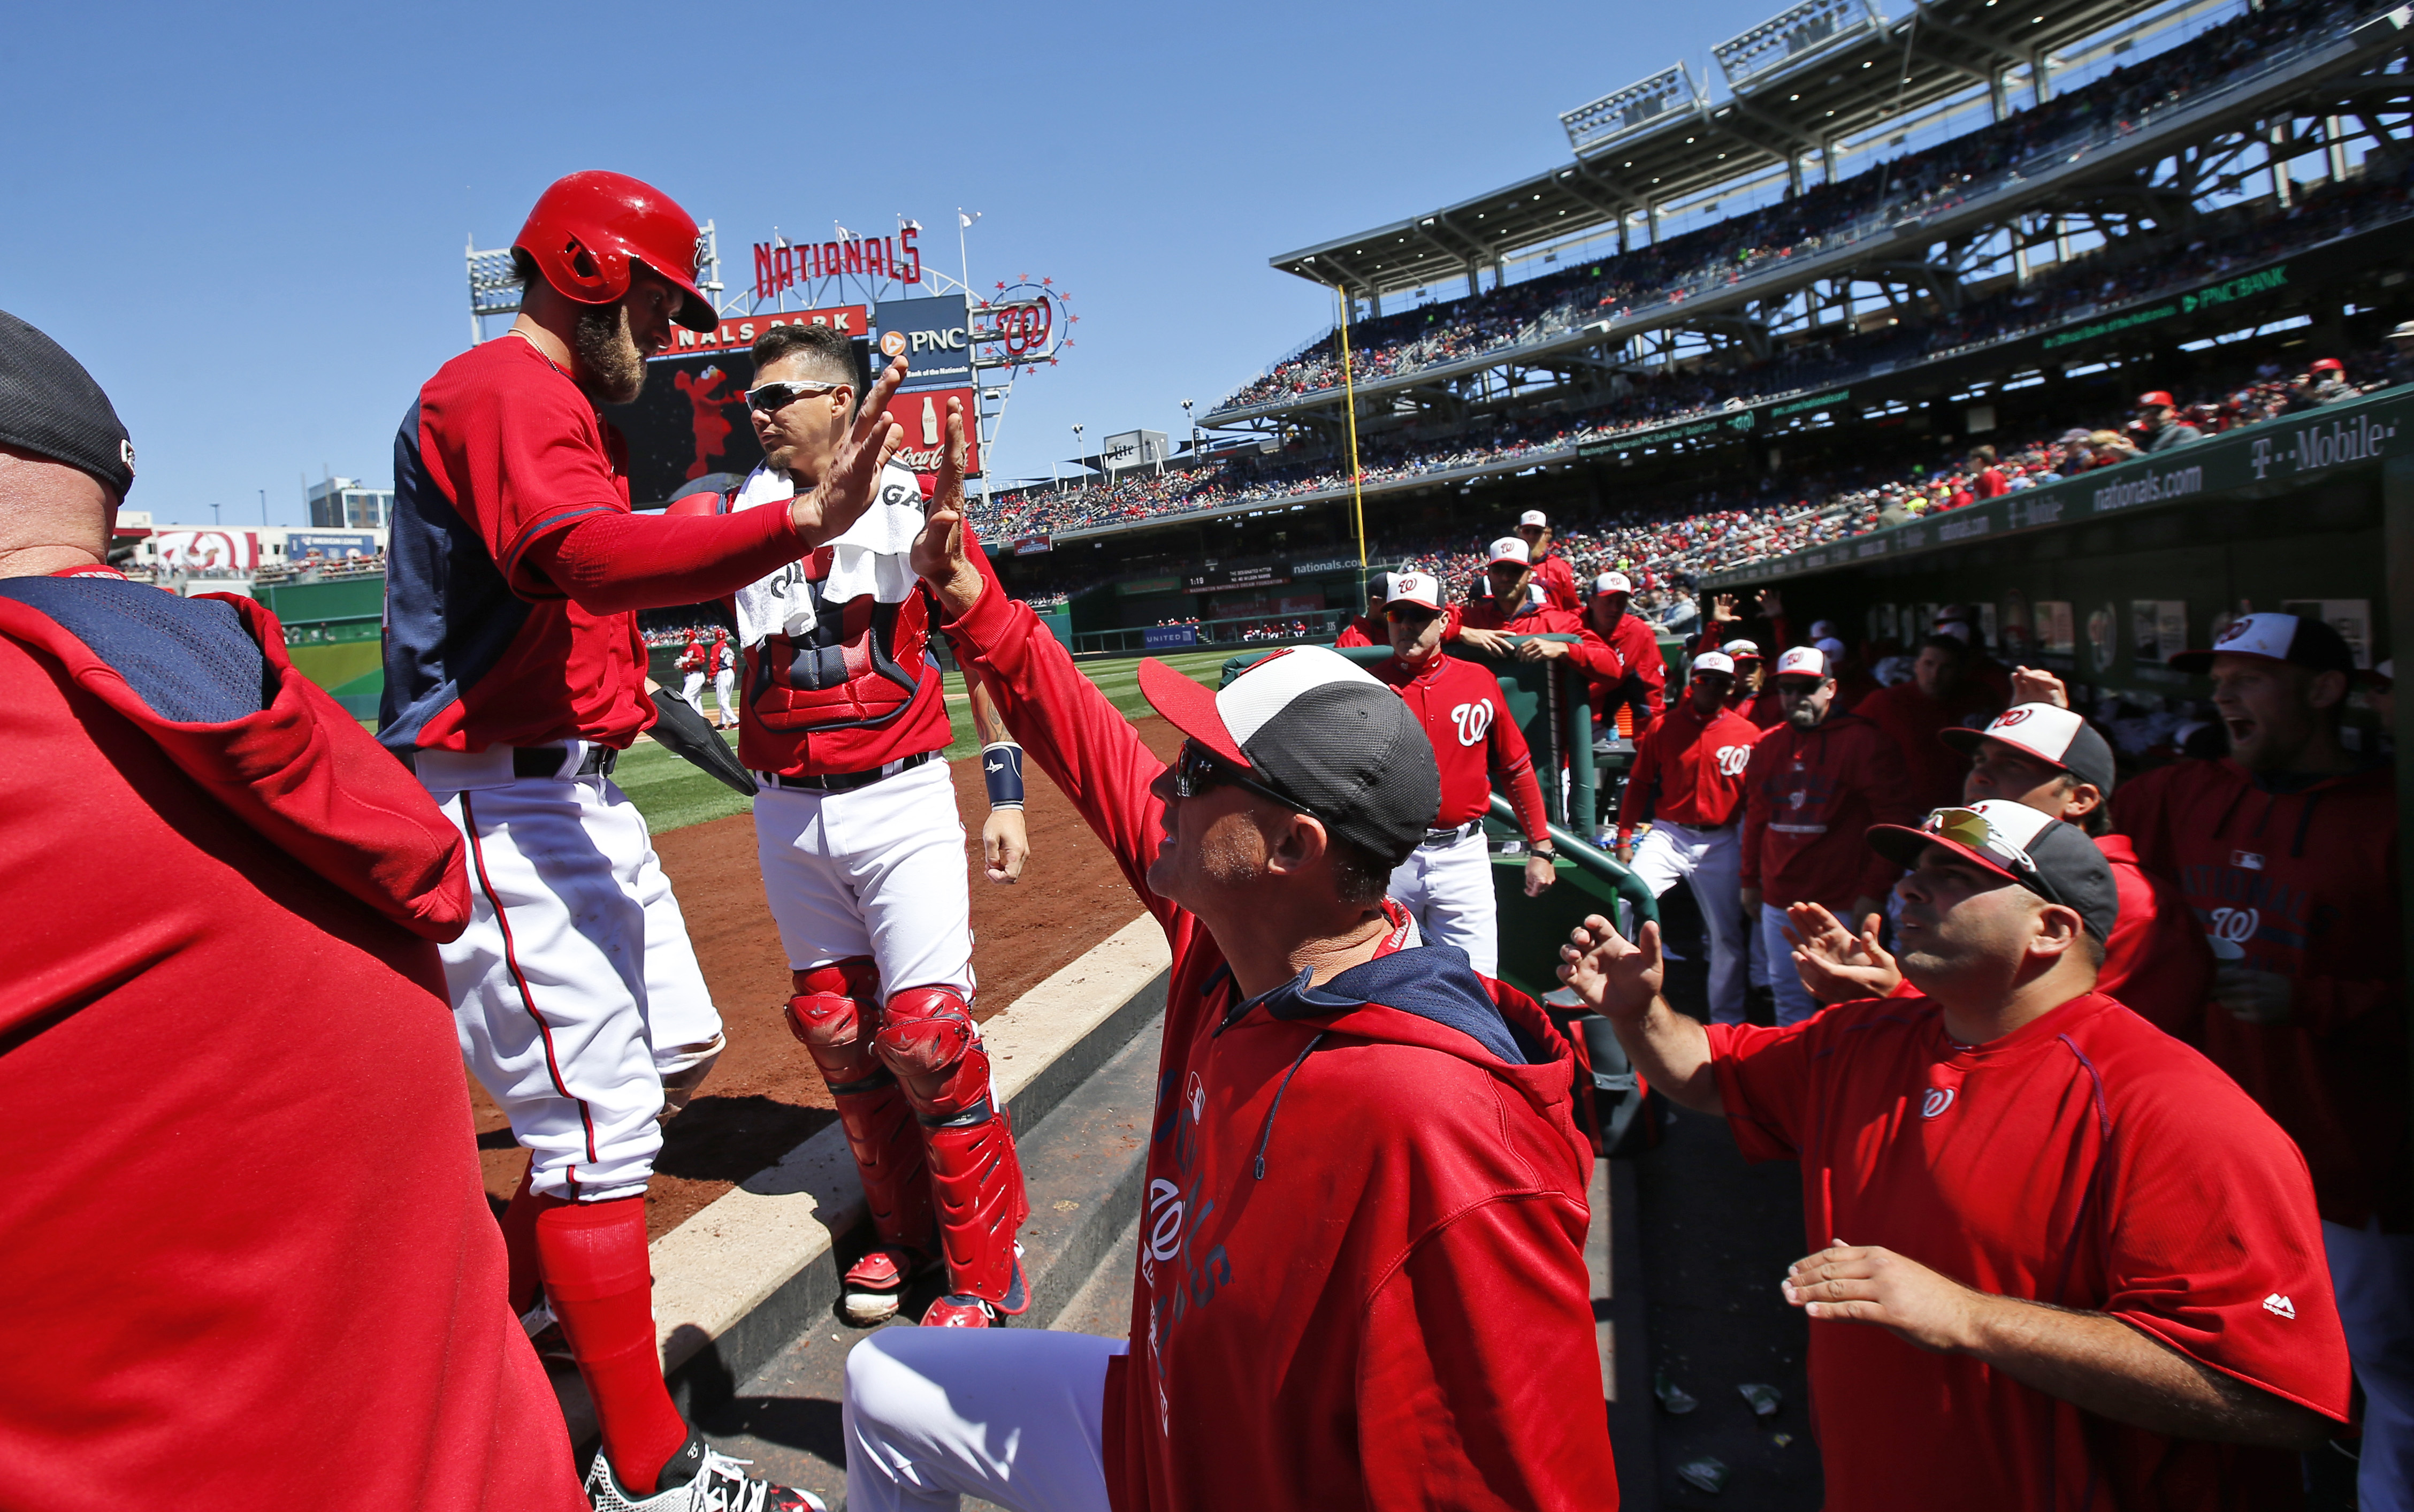 Nats set to host 2018 All-Star Game